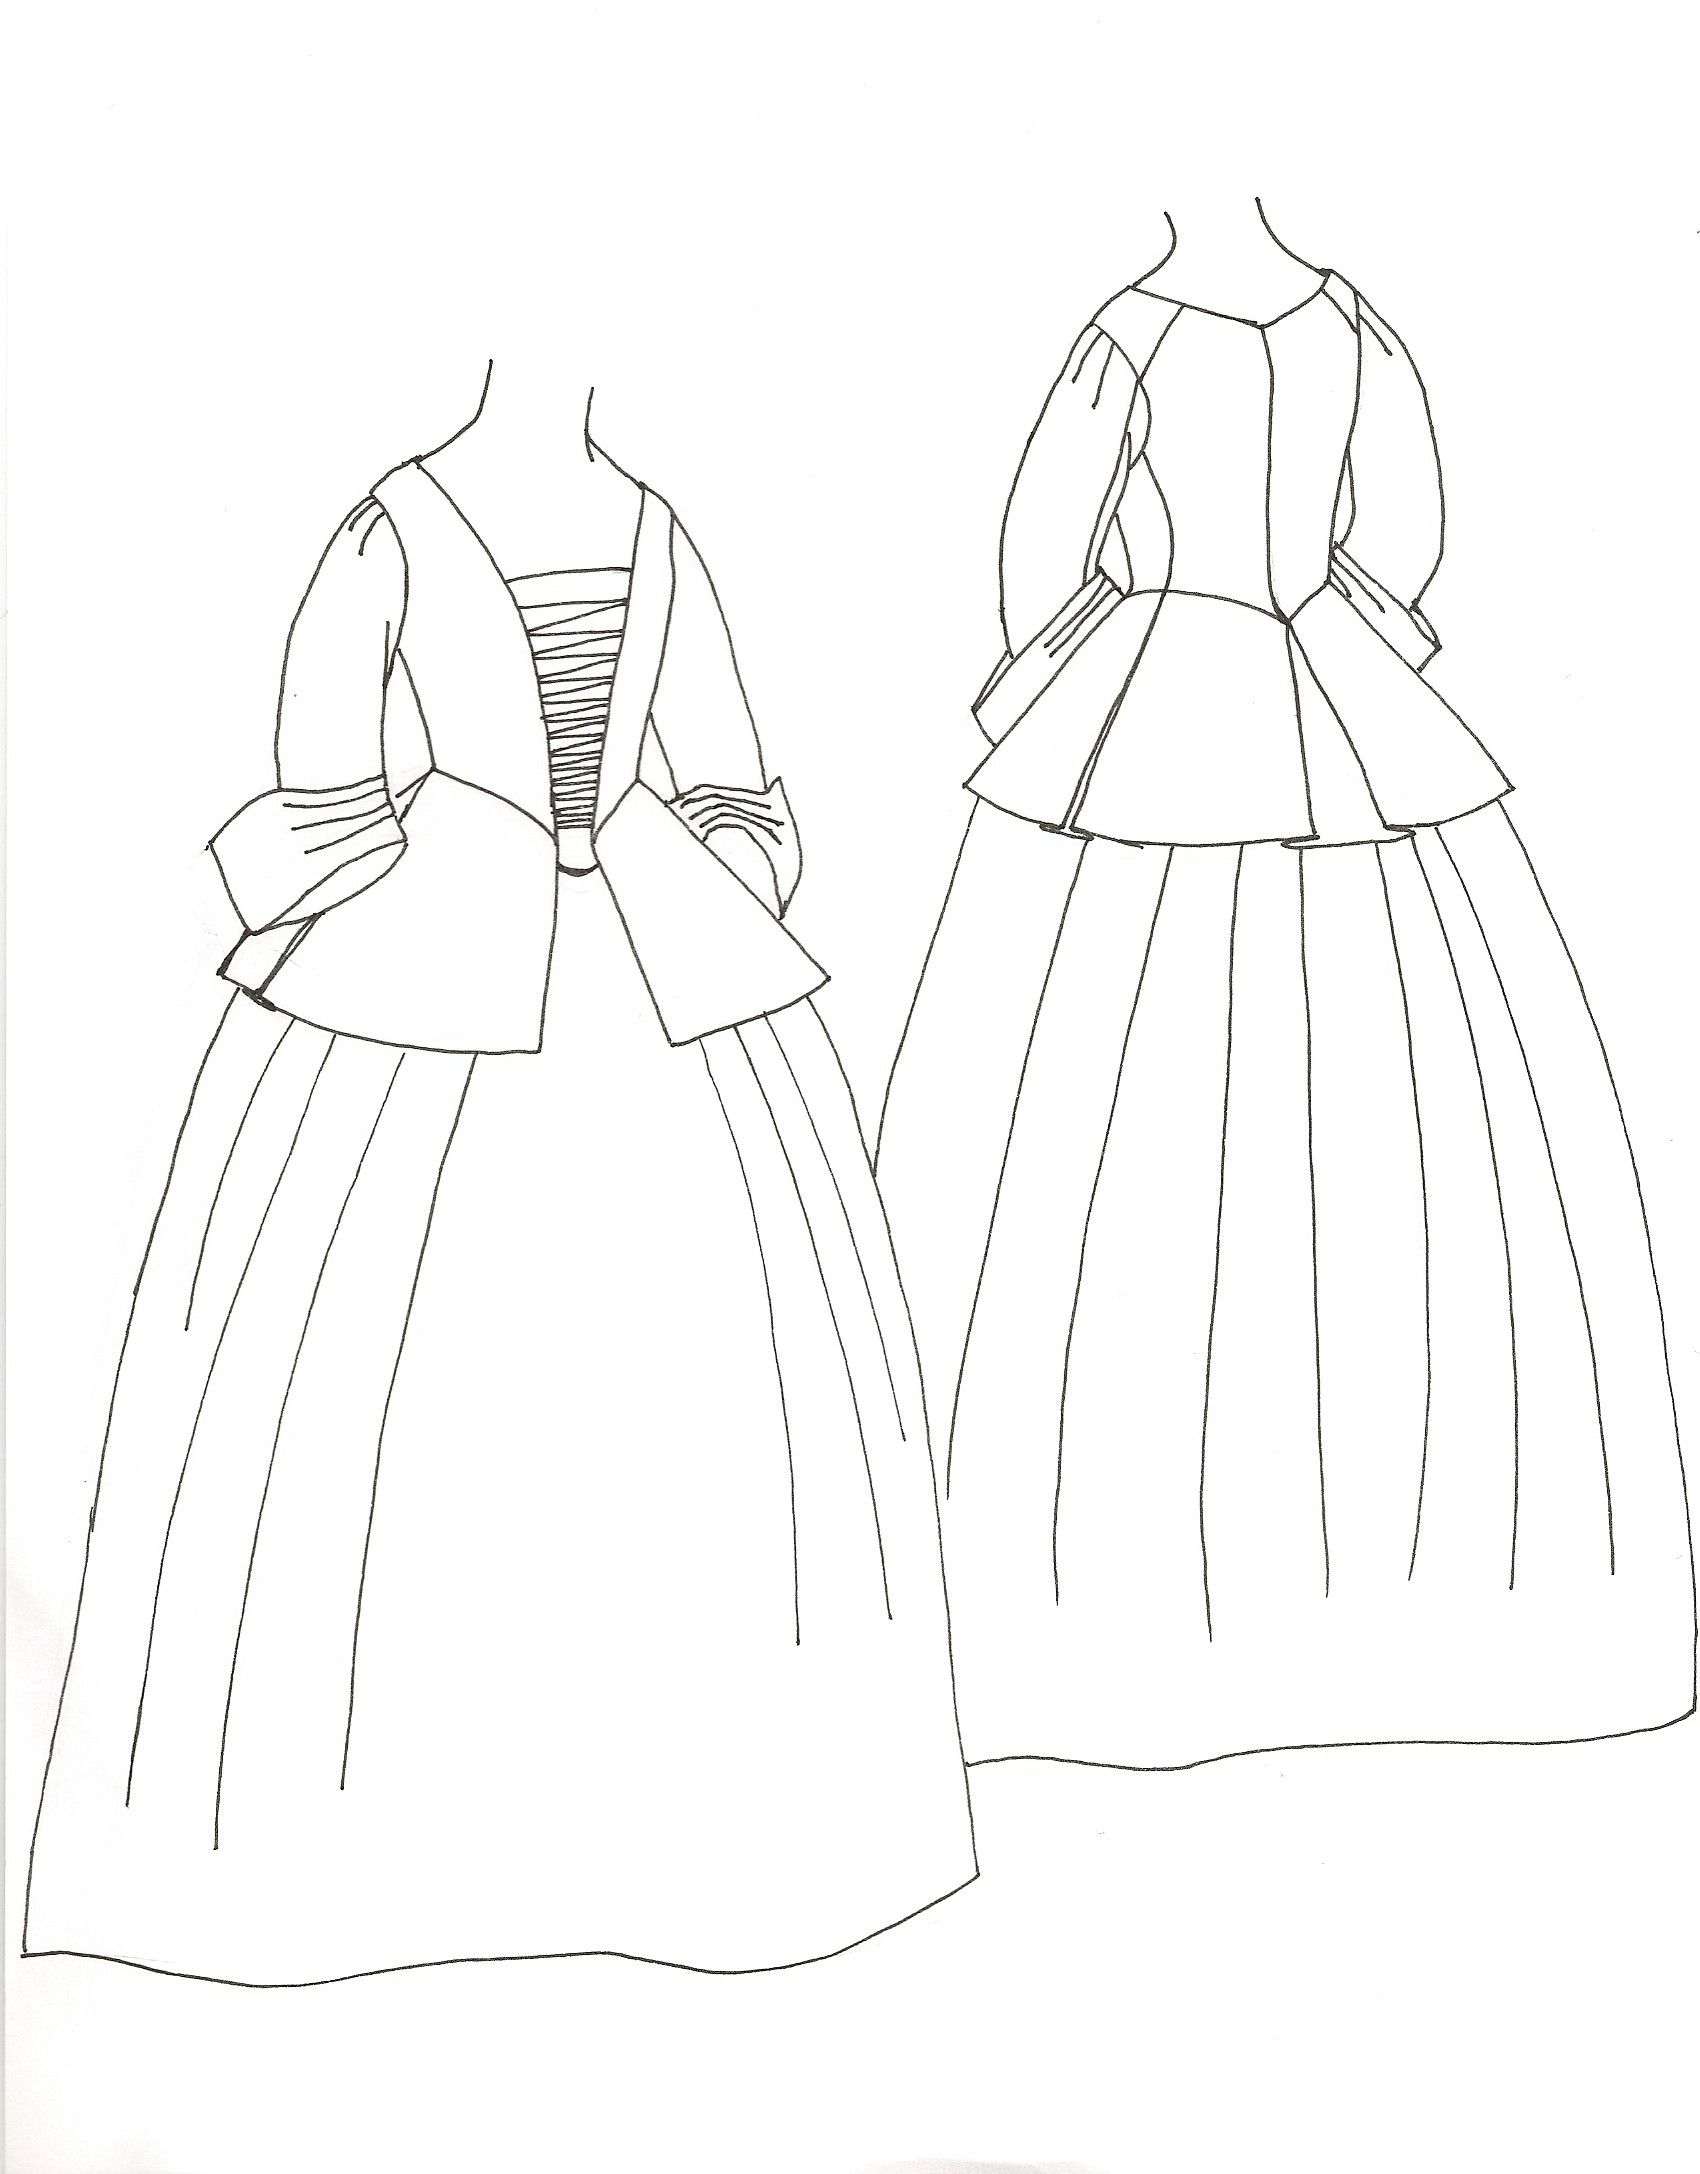 Calico Jacket And Petticoat